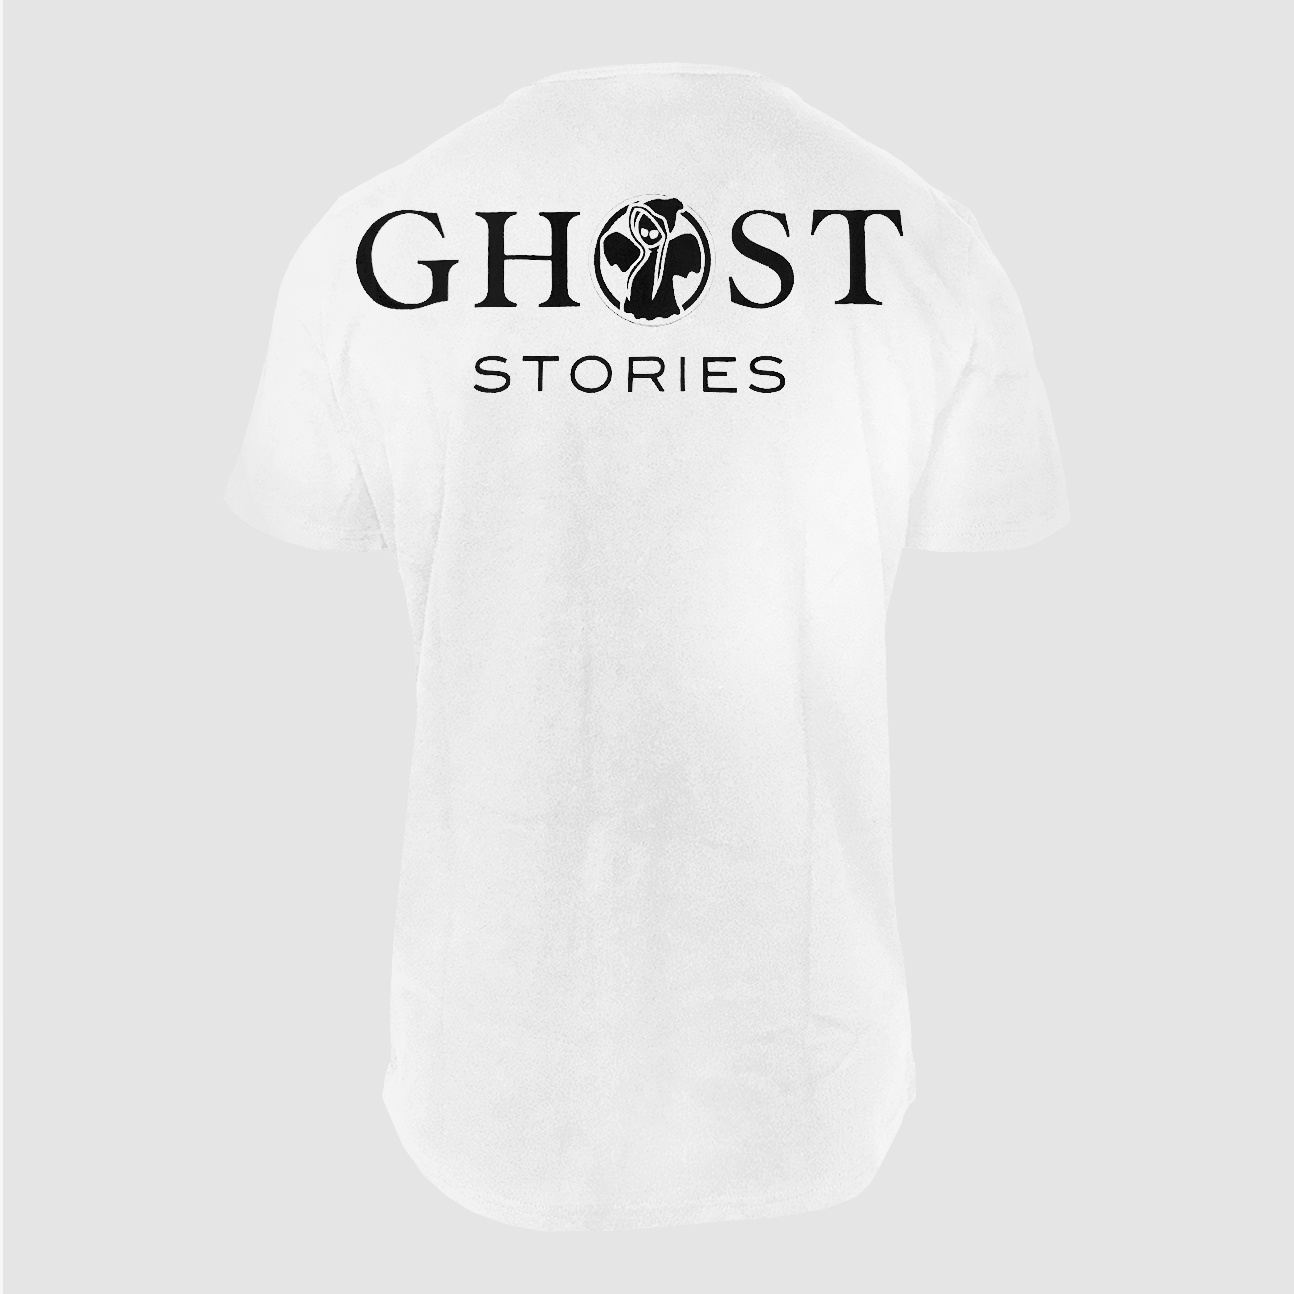 Ghost Stories T-shirt